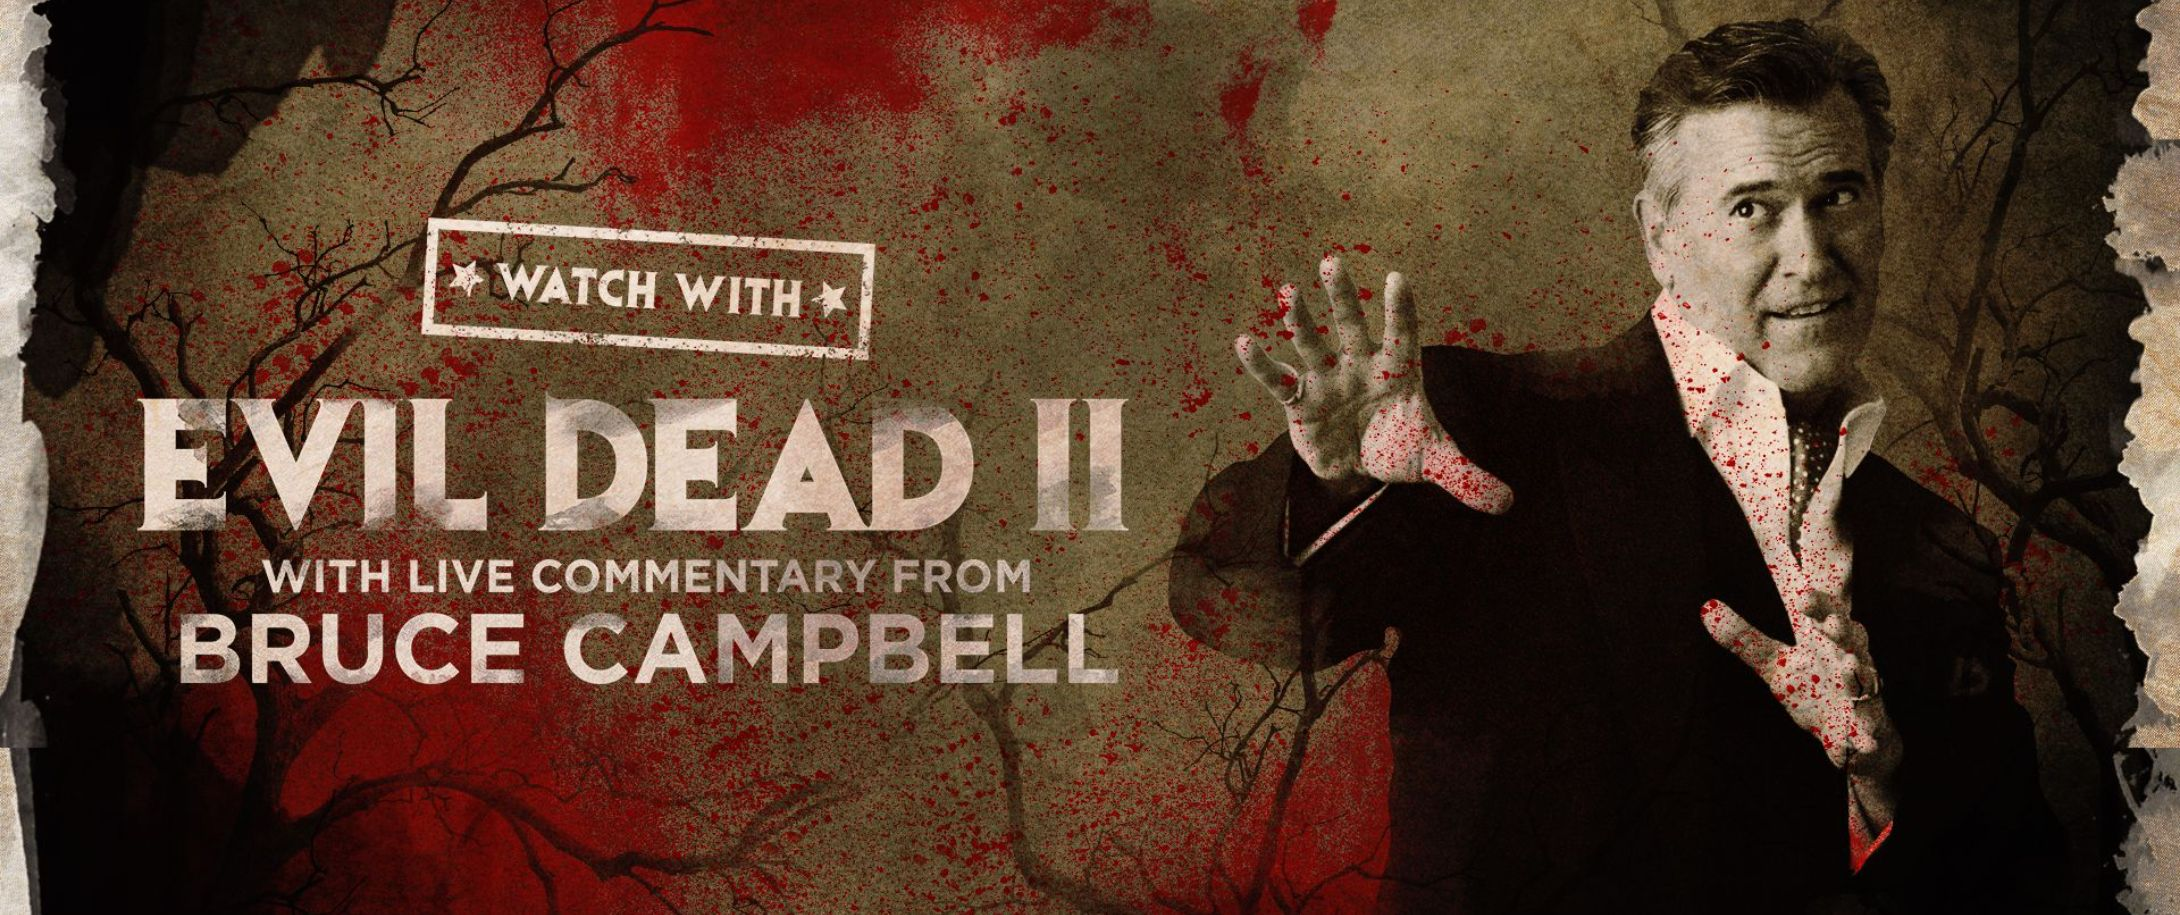 Watch With... Bruce Campbell presents The Evil Dead II